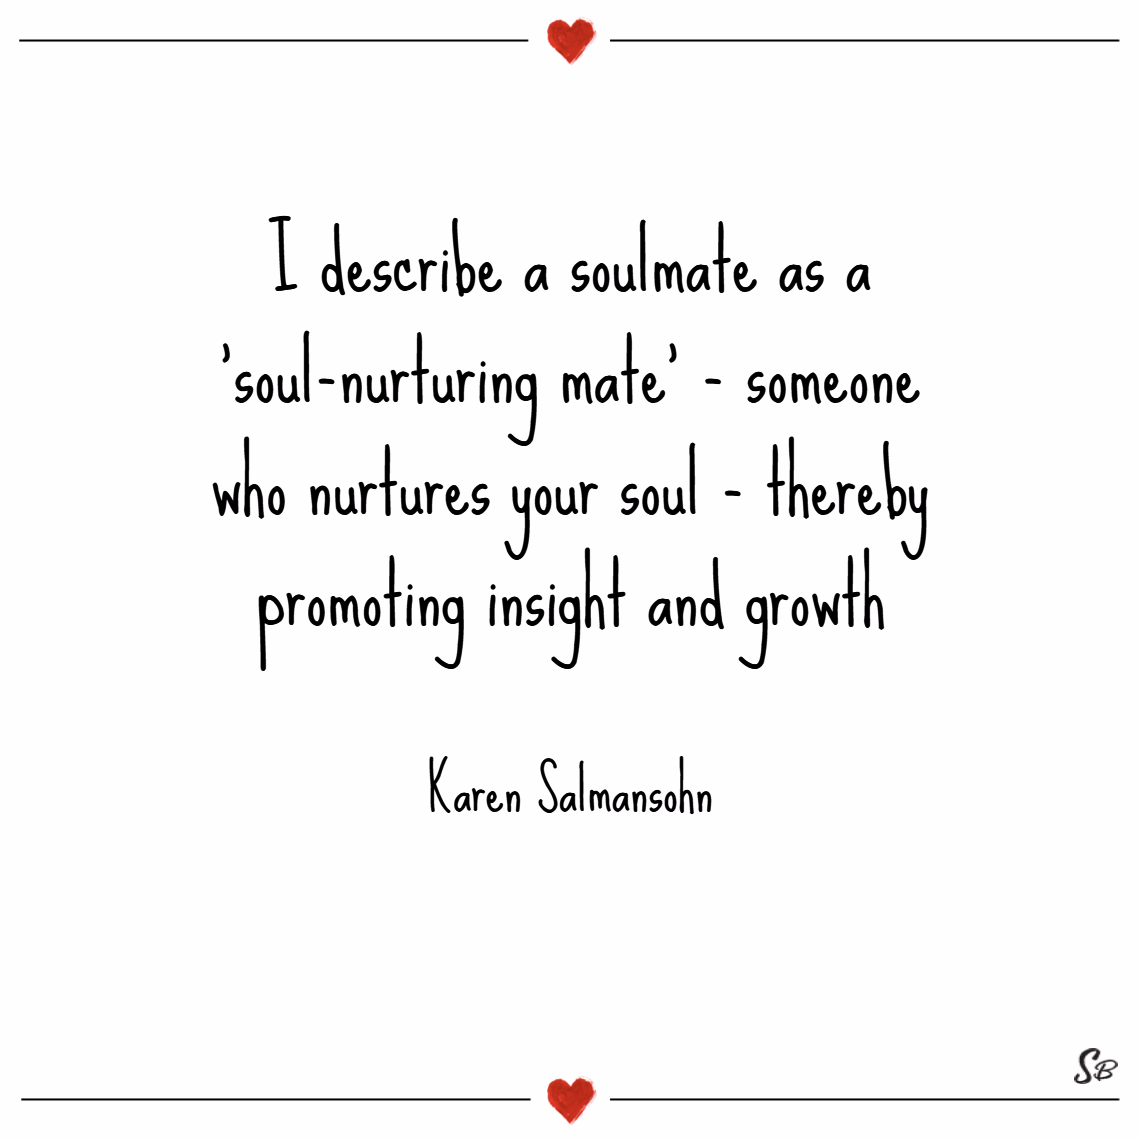 I describe a soulmate as a 'soul nurturing mate' someone who nurtures your soul thereby promoting insight and growth. – karen salmansohn